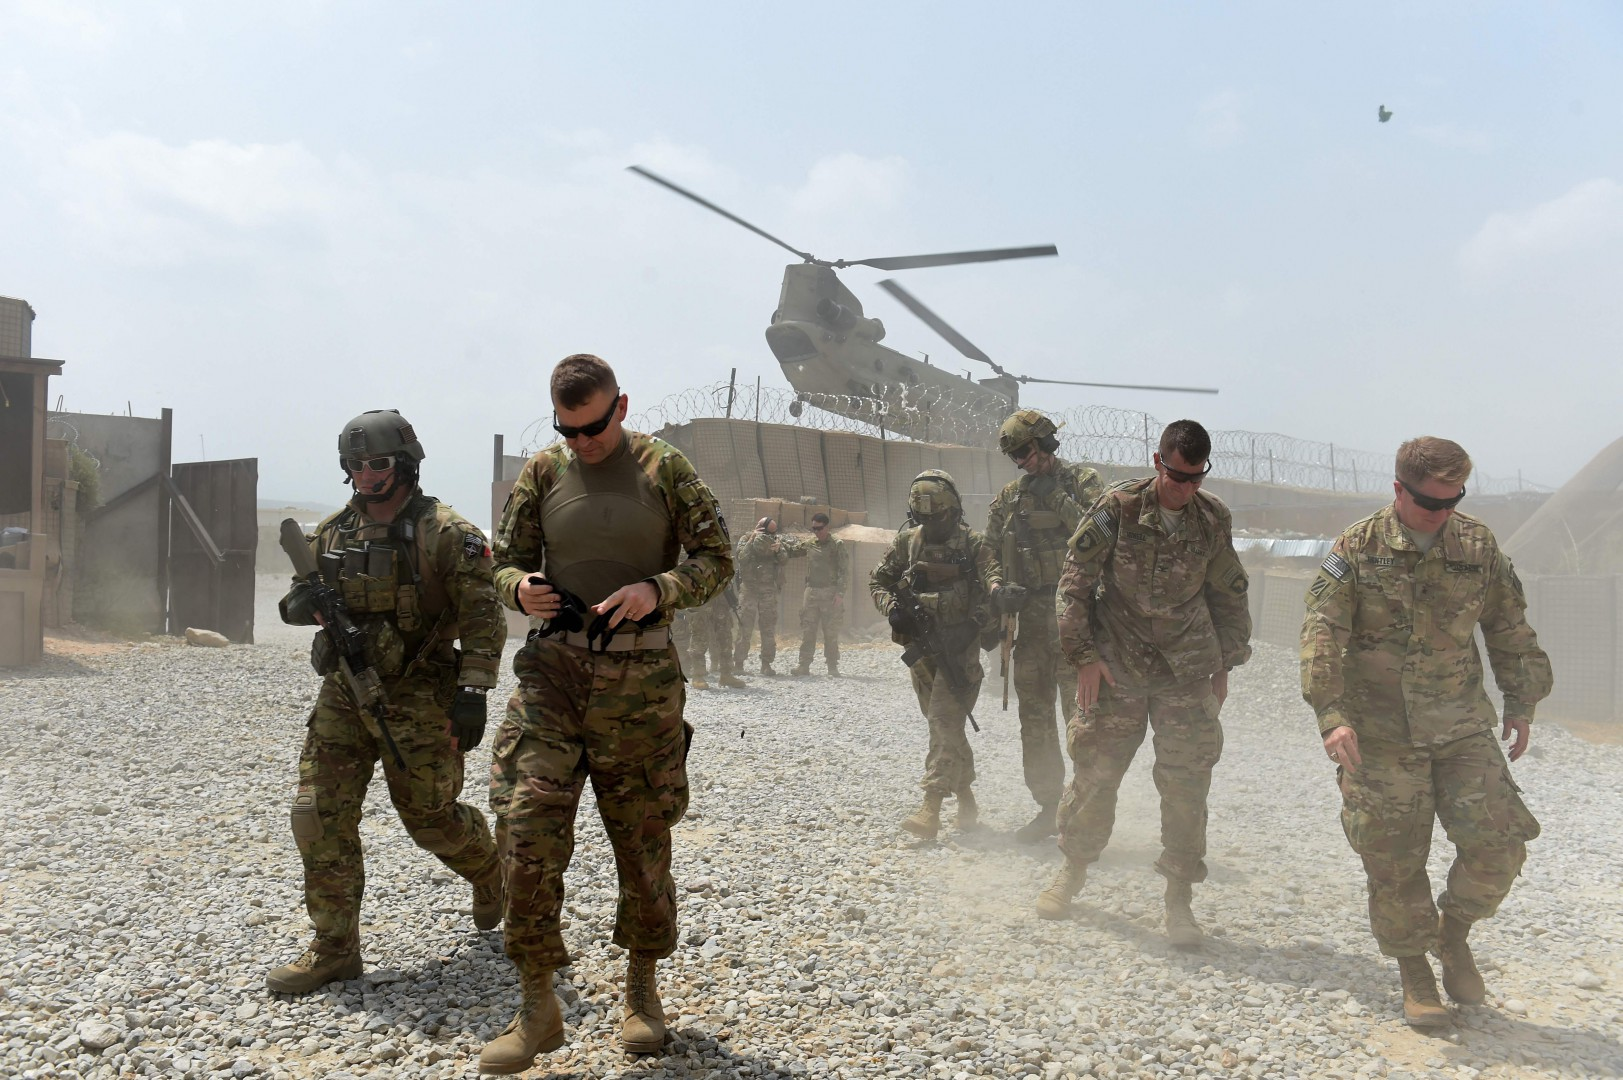 "(FILES) In this file photo taken on August 12, 2015 US army soldiers walk as a NATO helicopter flies overhead at coalition force Forward Operating Base (FOB) Connelly in the Khogyani district in the eastern province of Nangarhar. - President Donald Trump has decided to pull a significant number of troops from Afghanistan, a US official told AFP on Thursday, a day after he announced a withdrawal from Syria. ""That decision has been made. There will be a significant withdrawal,"" the official told AFP on condition of anonymity. (Photo by Wakil KOHSAR / AFP)"